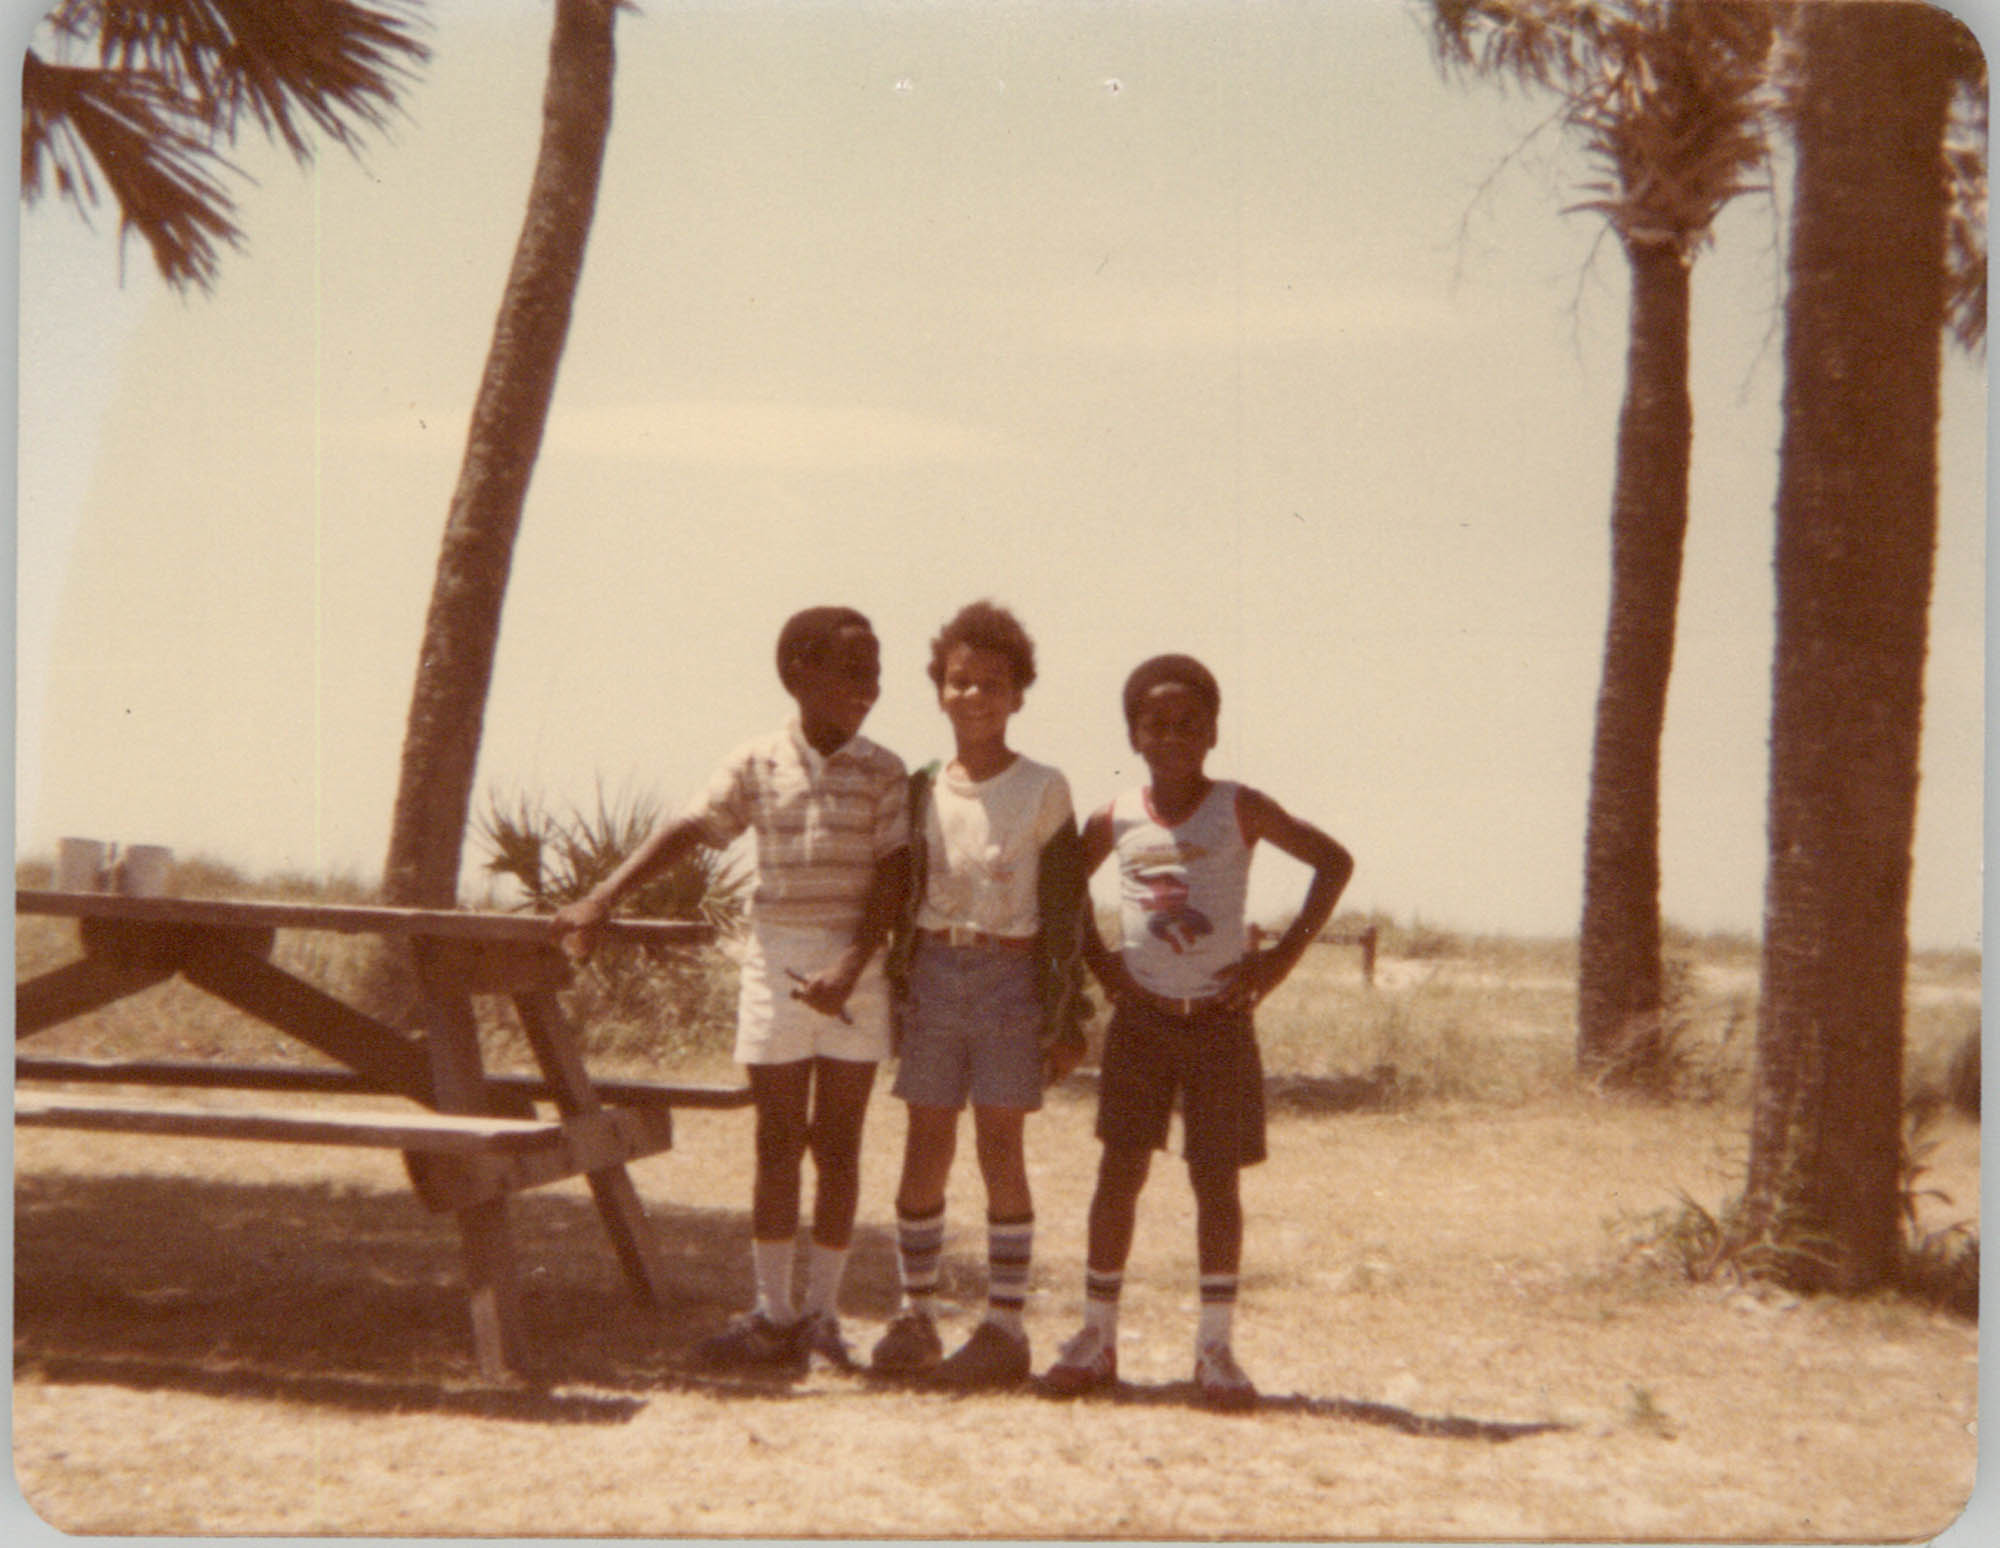 Photograph of Three Children Standing Outdoors